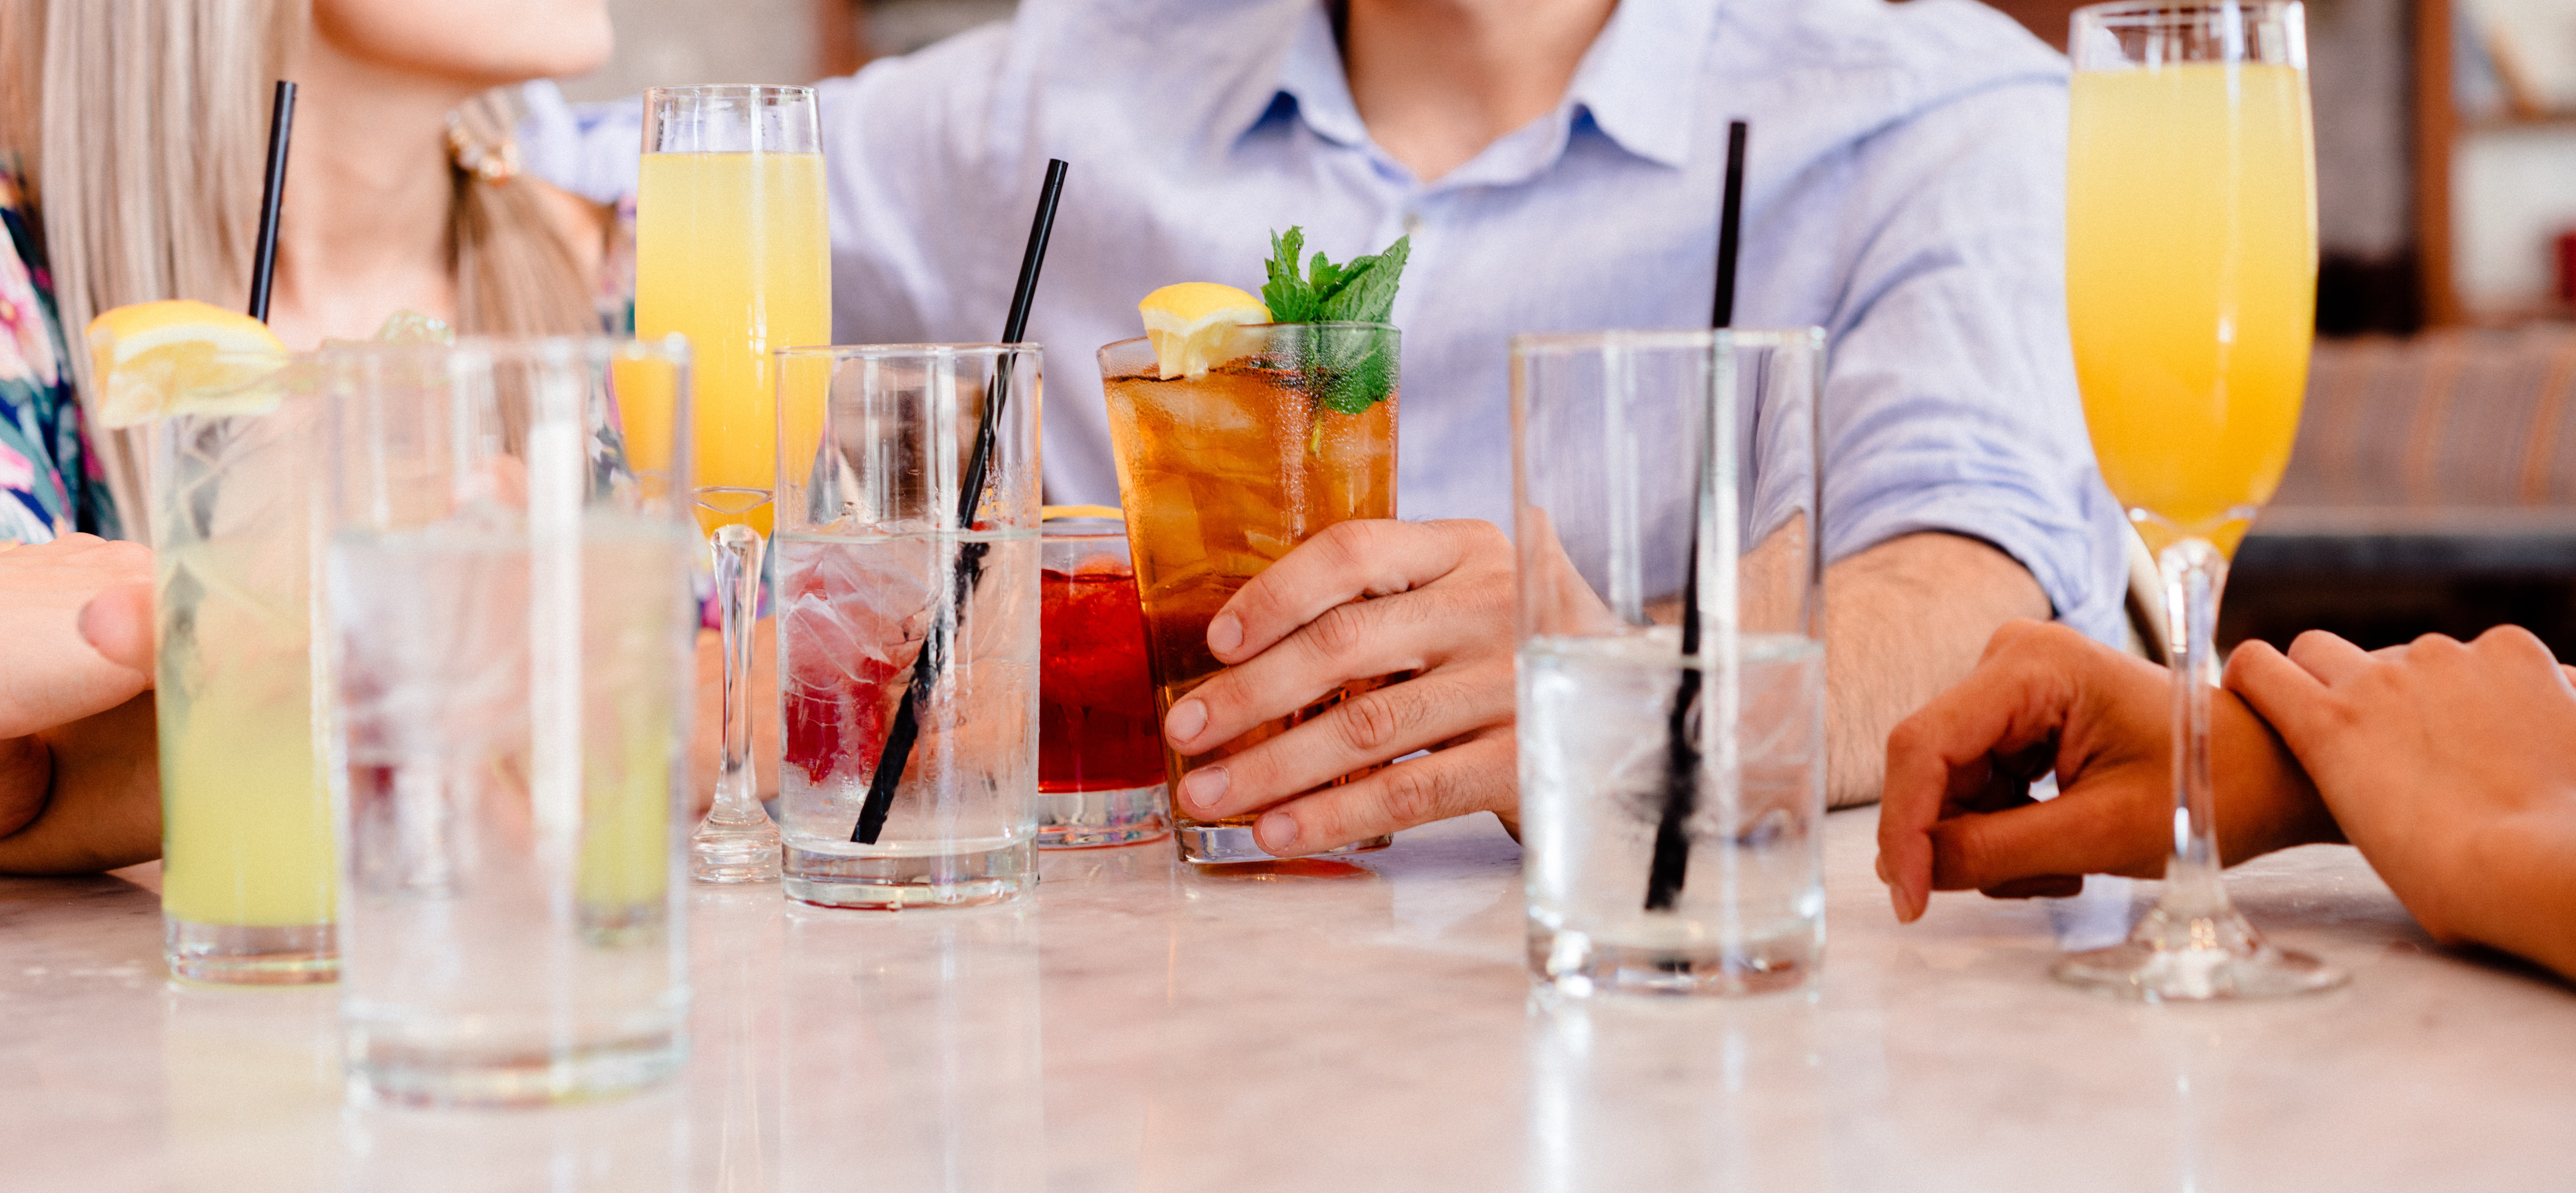 A group of friends sitting at a table with drinks